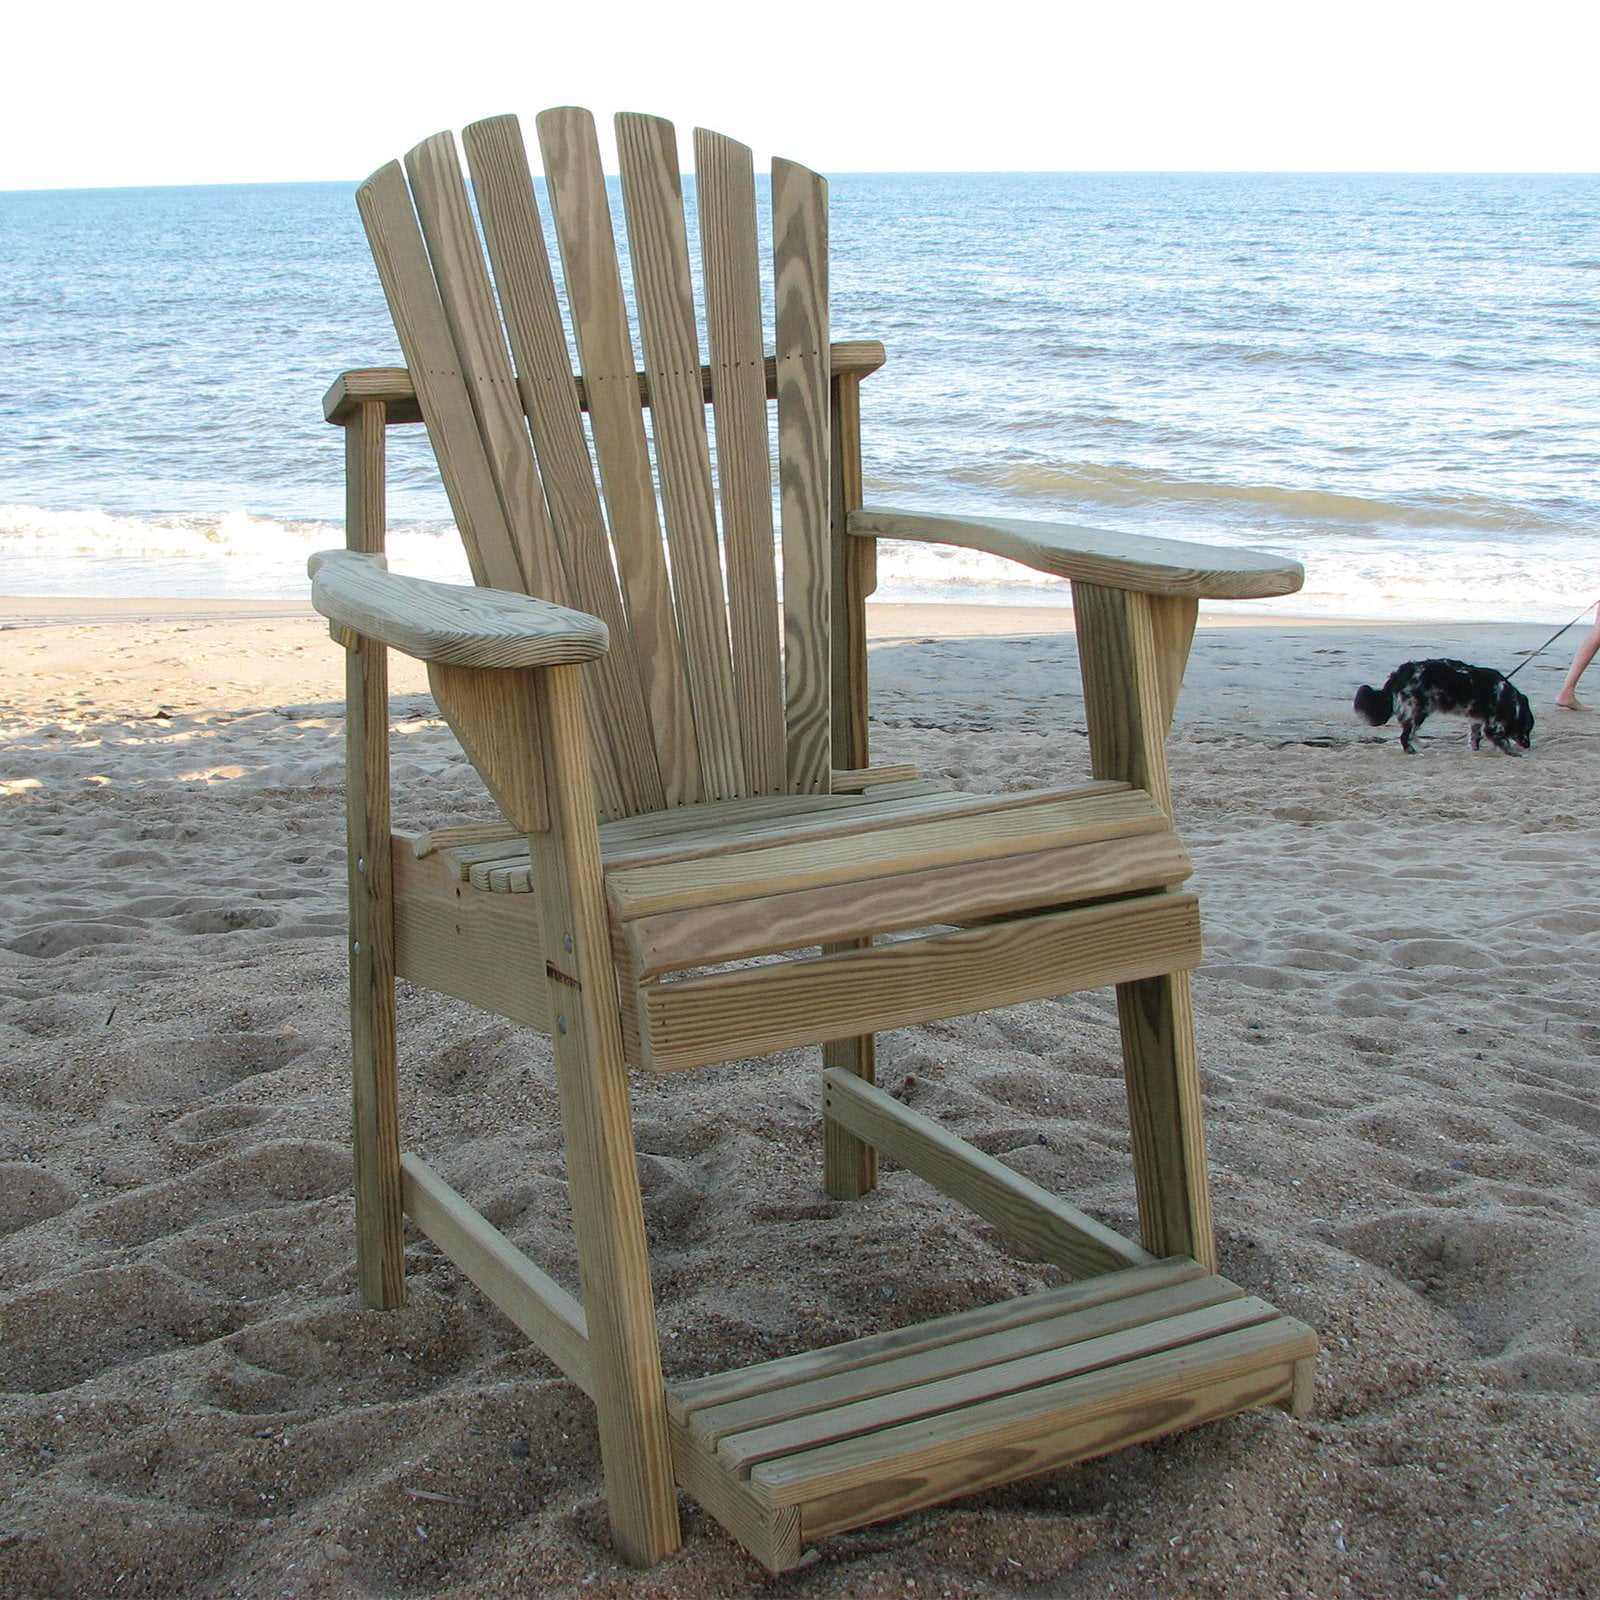 Weathercraft Designers Choice Treated Balcony Adirondack Chair with Footrest Natural by Weathercraft Outdoor Furniture Inc